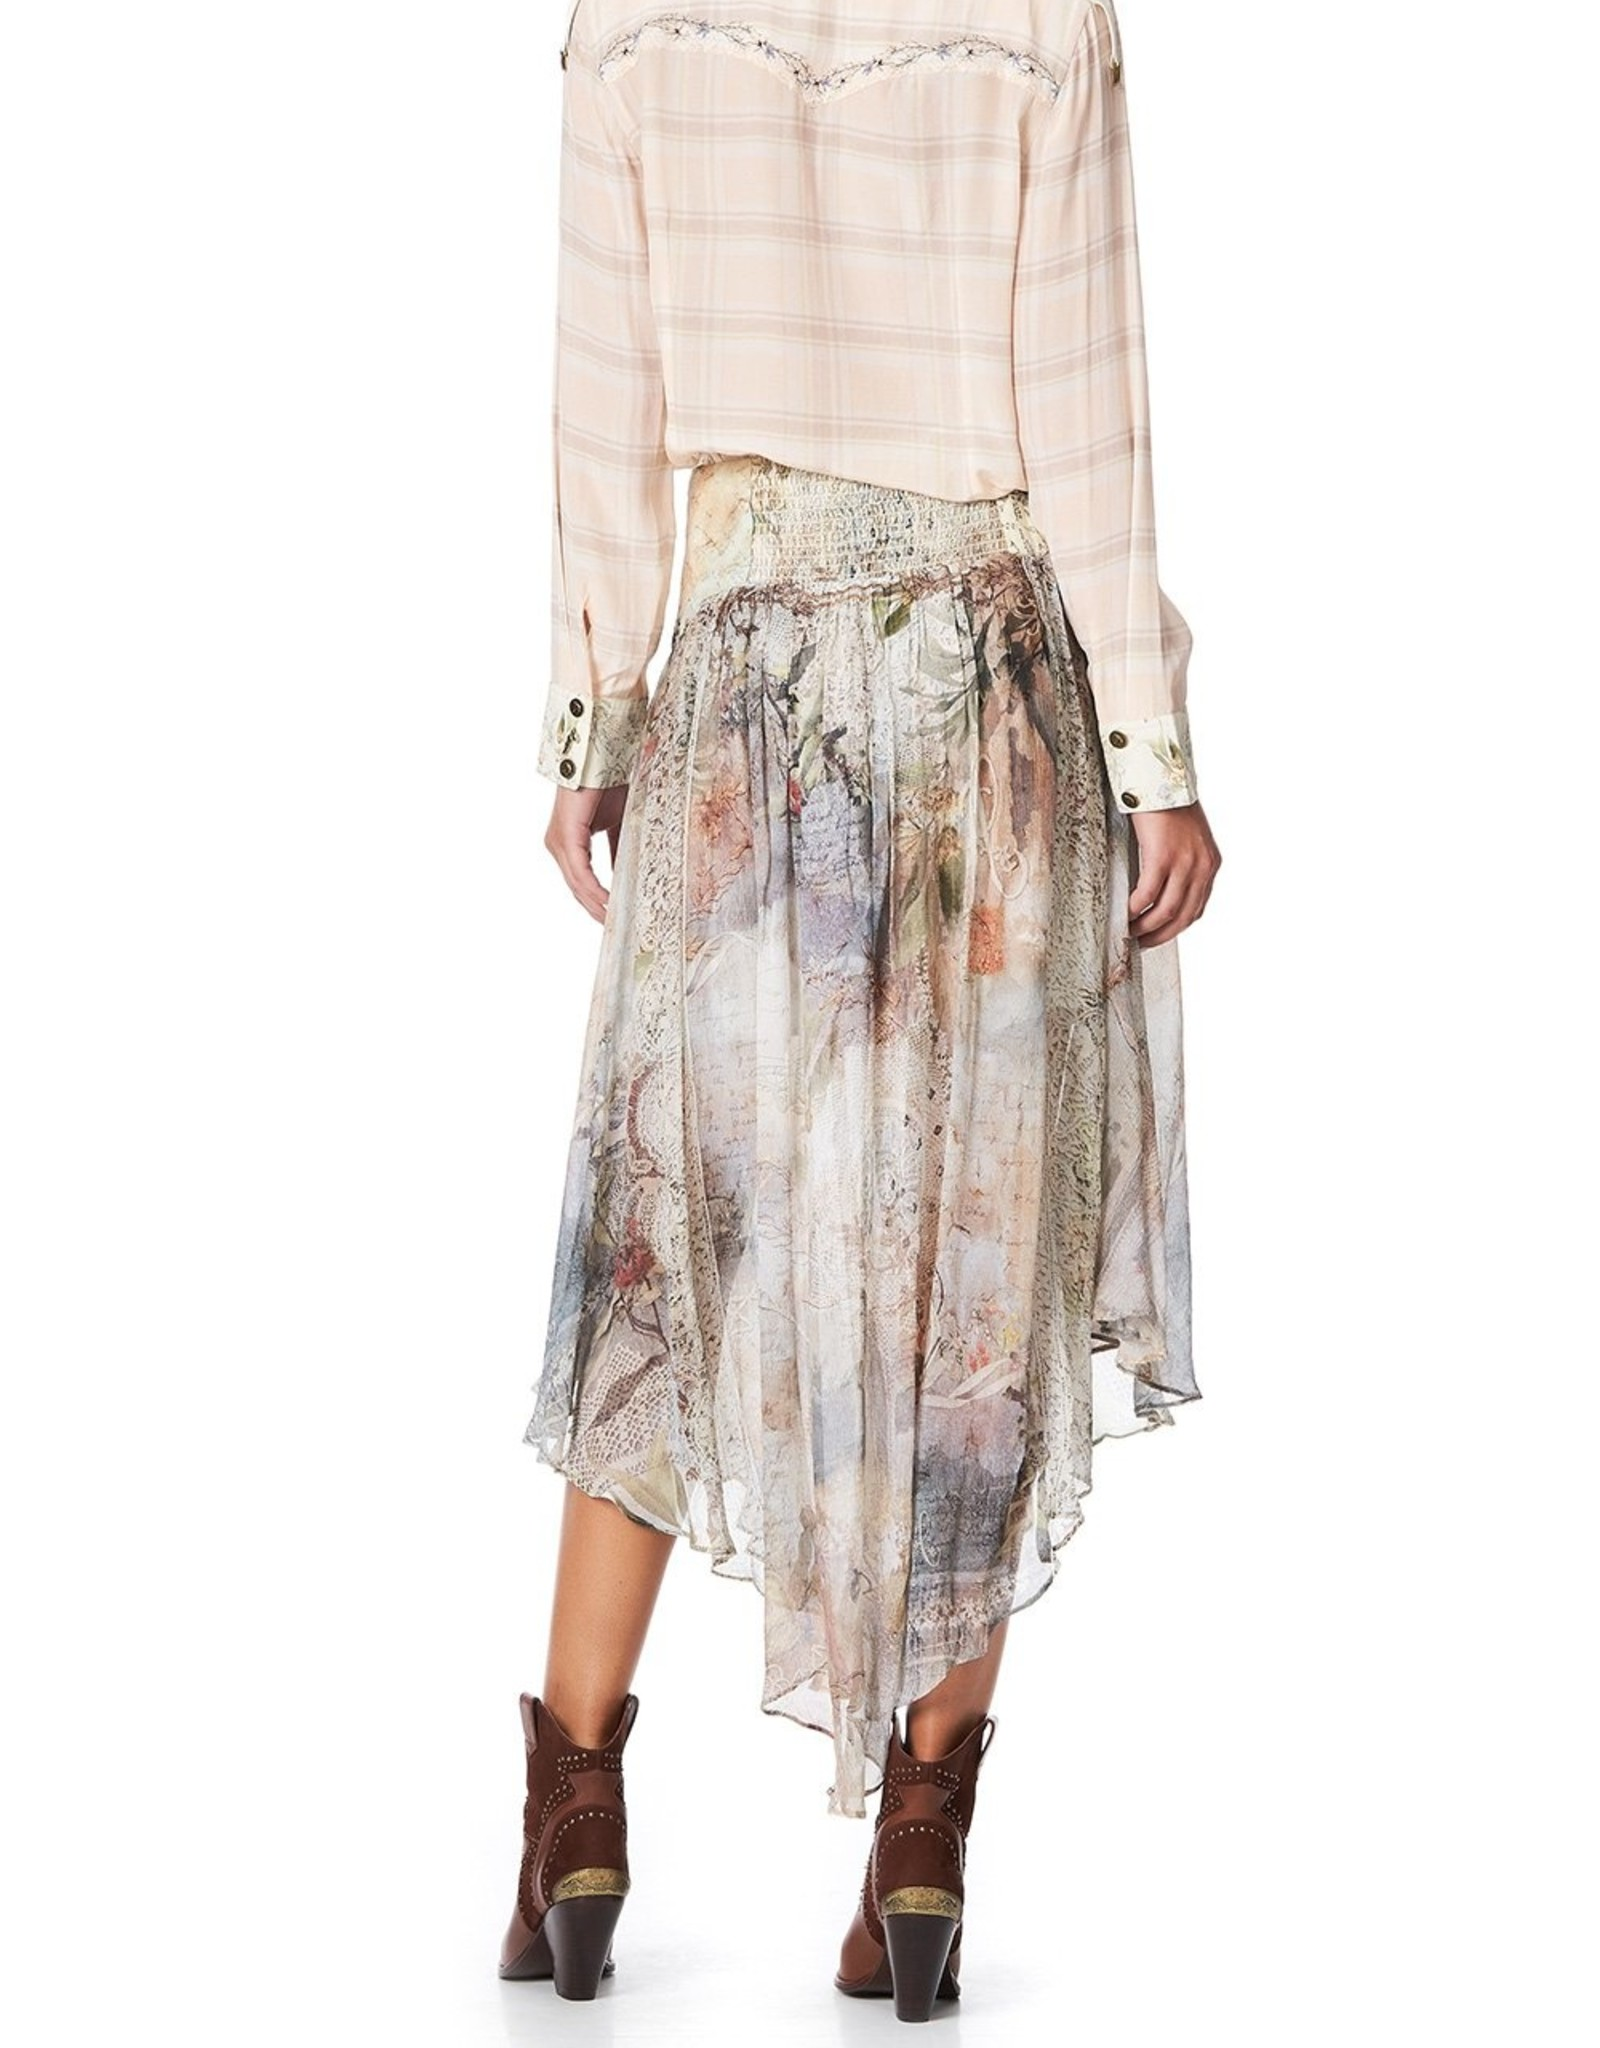 SALE - CAMILLA LETTERS FROM HILDA SHAPED WAIST SKIRT